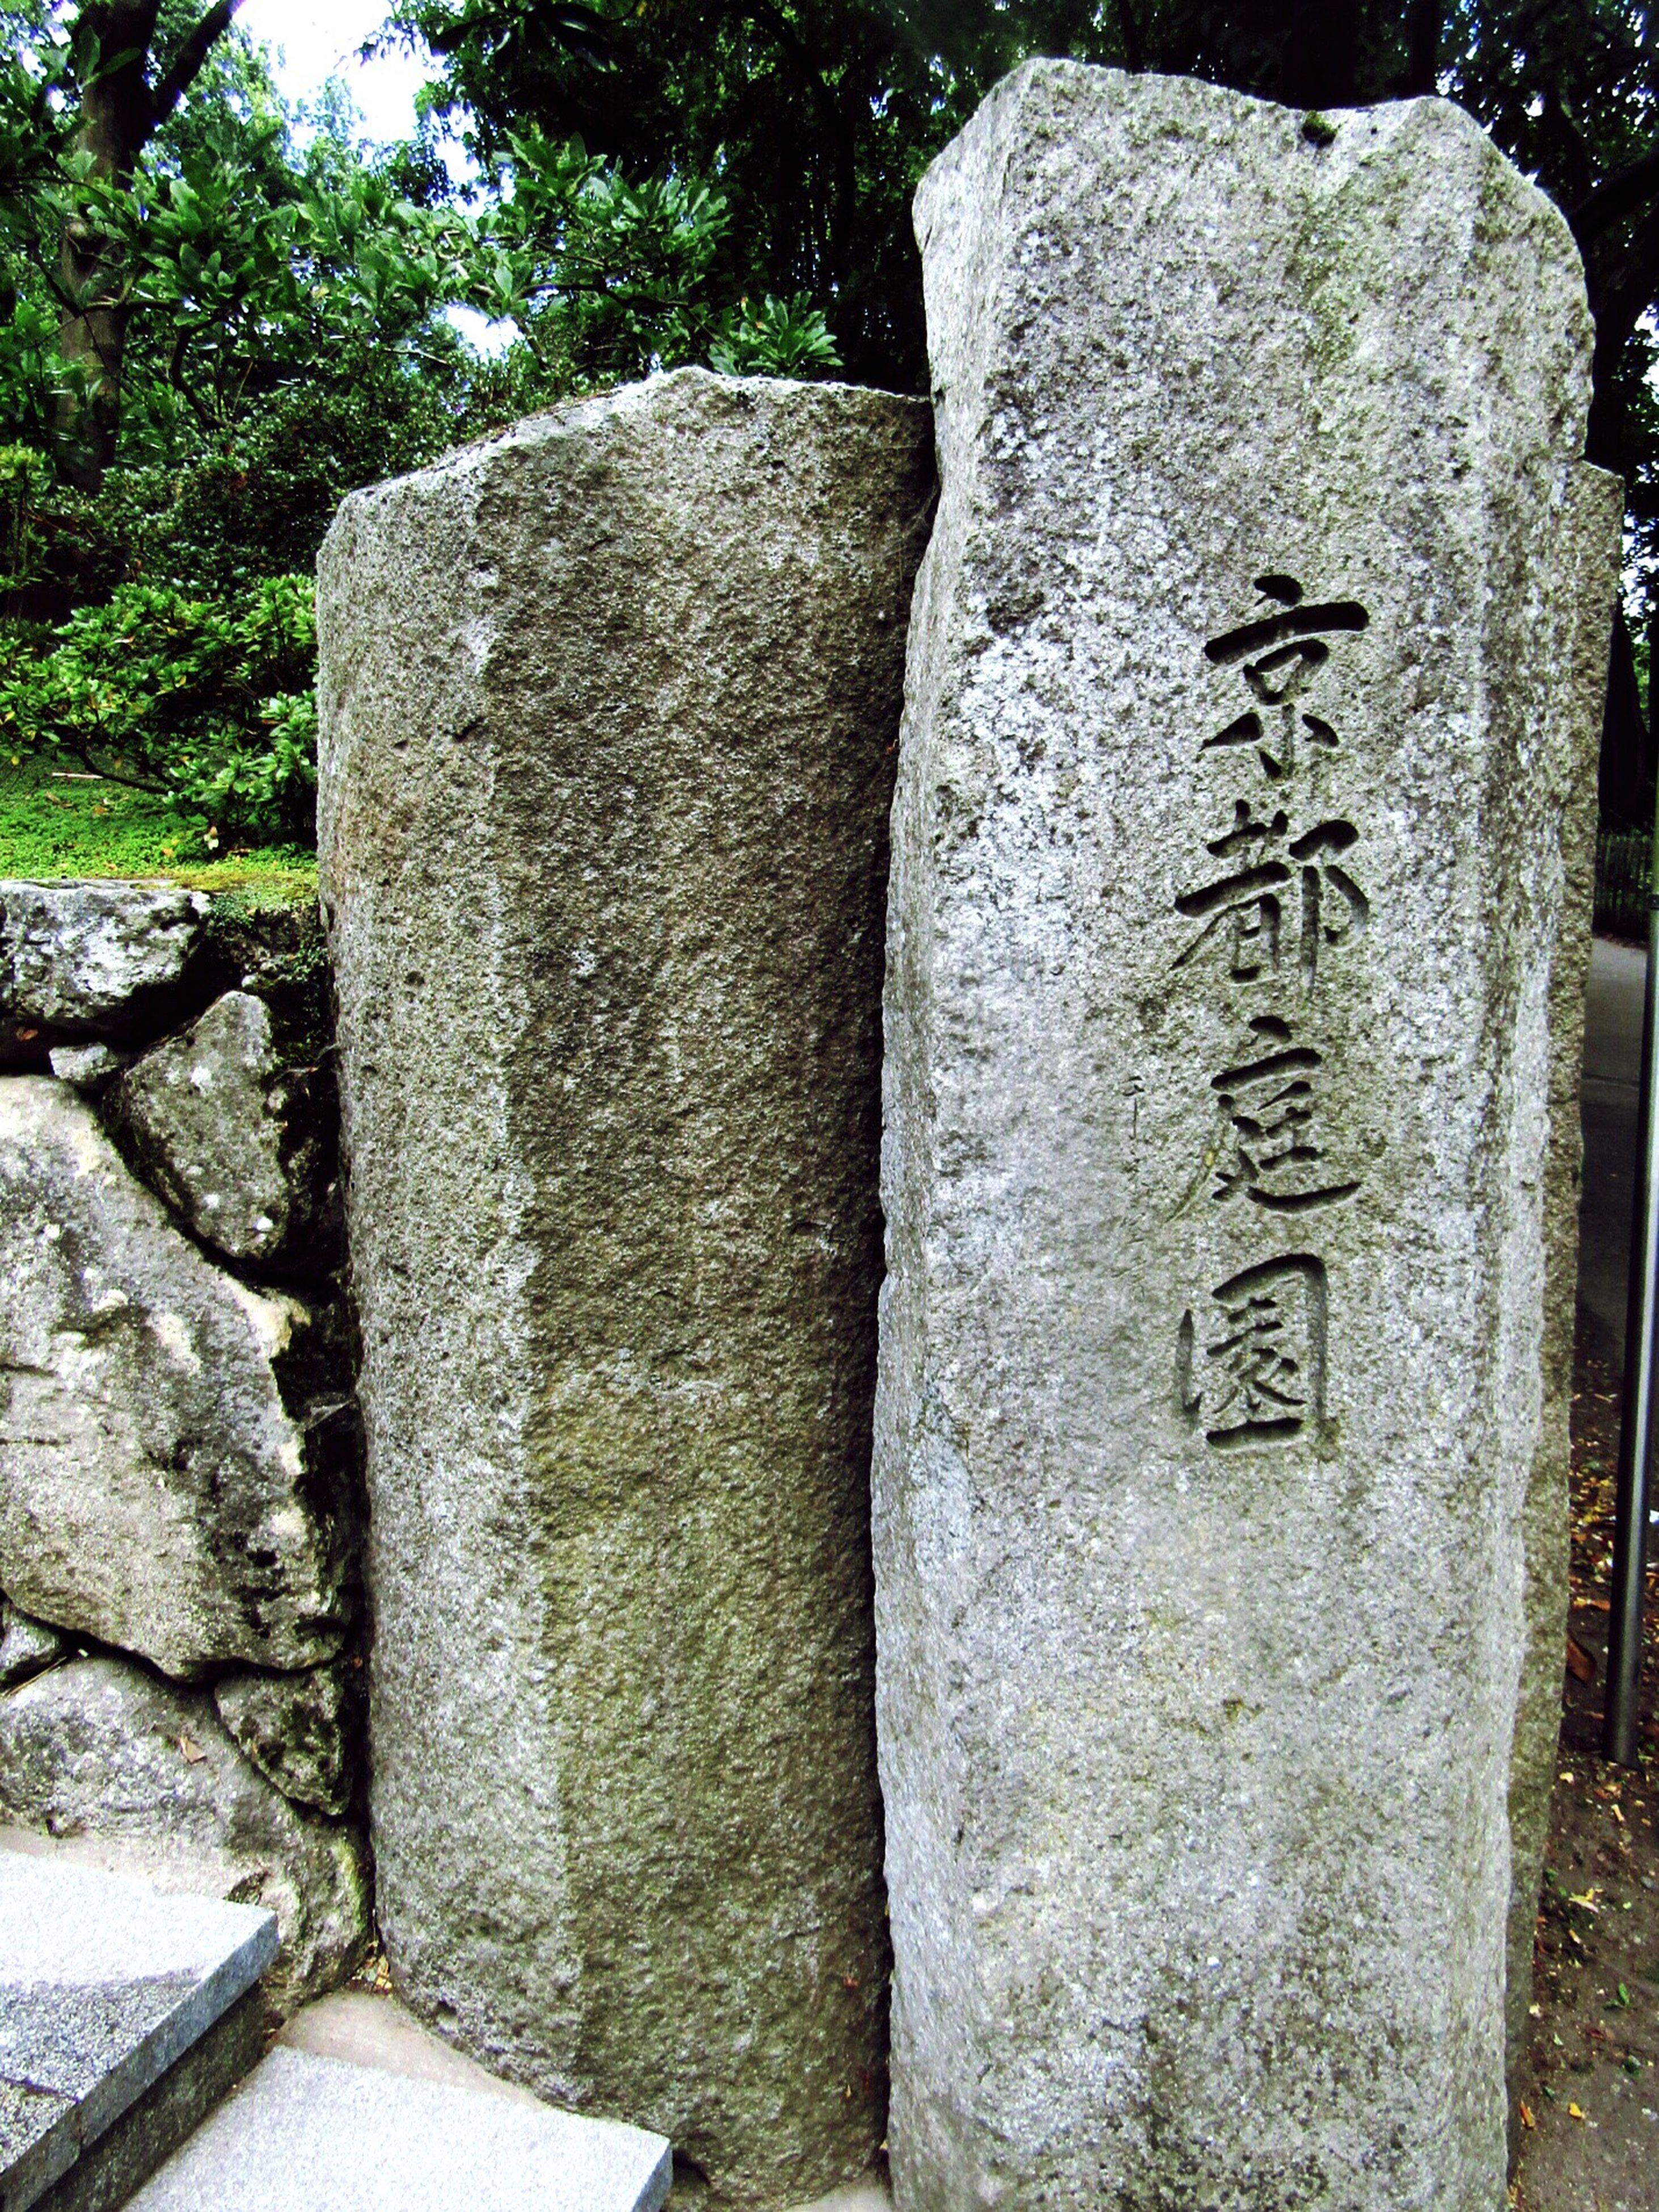 close-up, stone material, the past, outdoors, concrete, history, grey, day, ancient, no people, monument, ancient civilization, stone